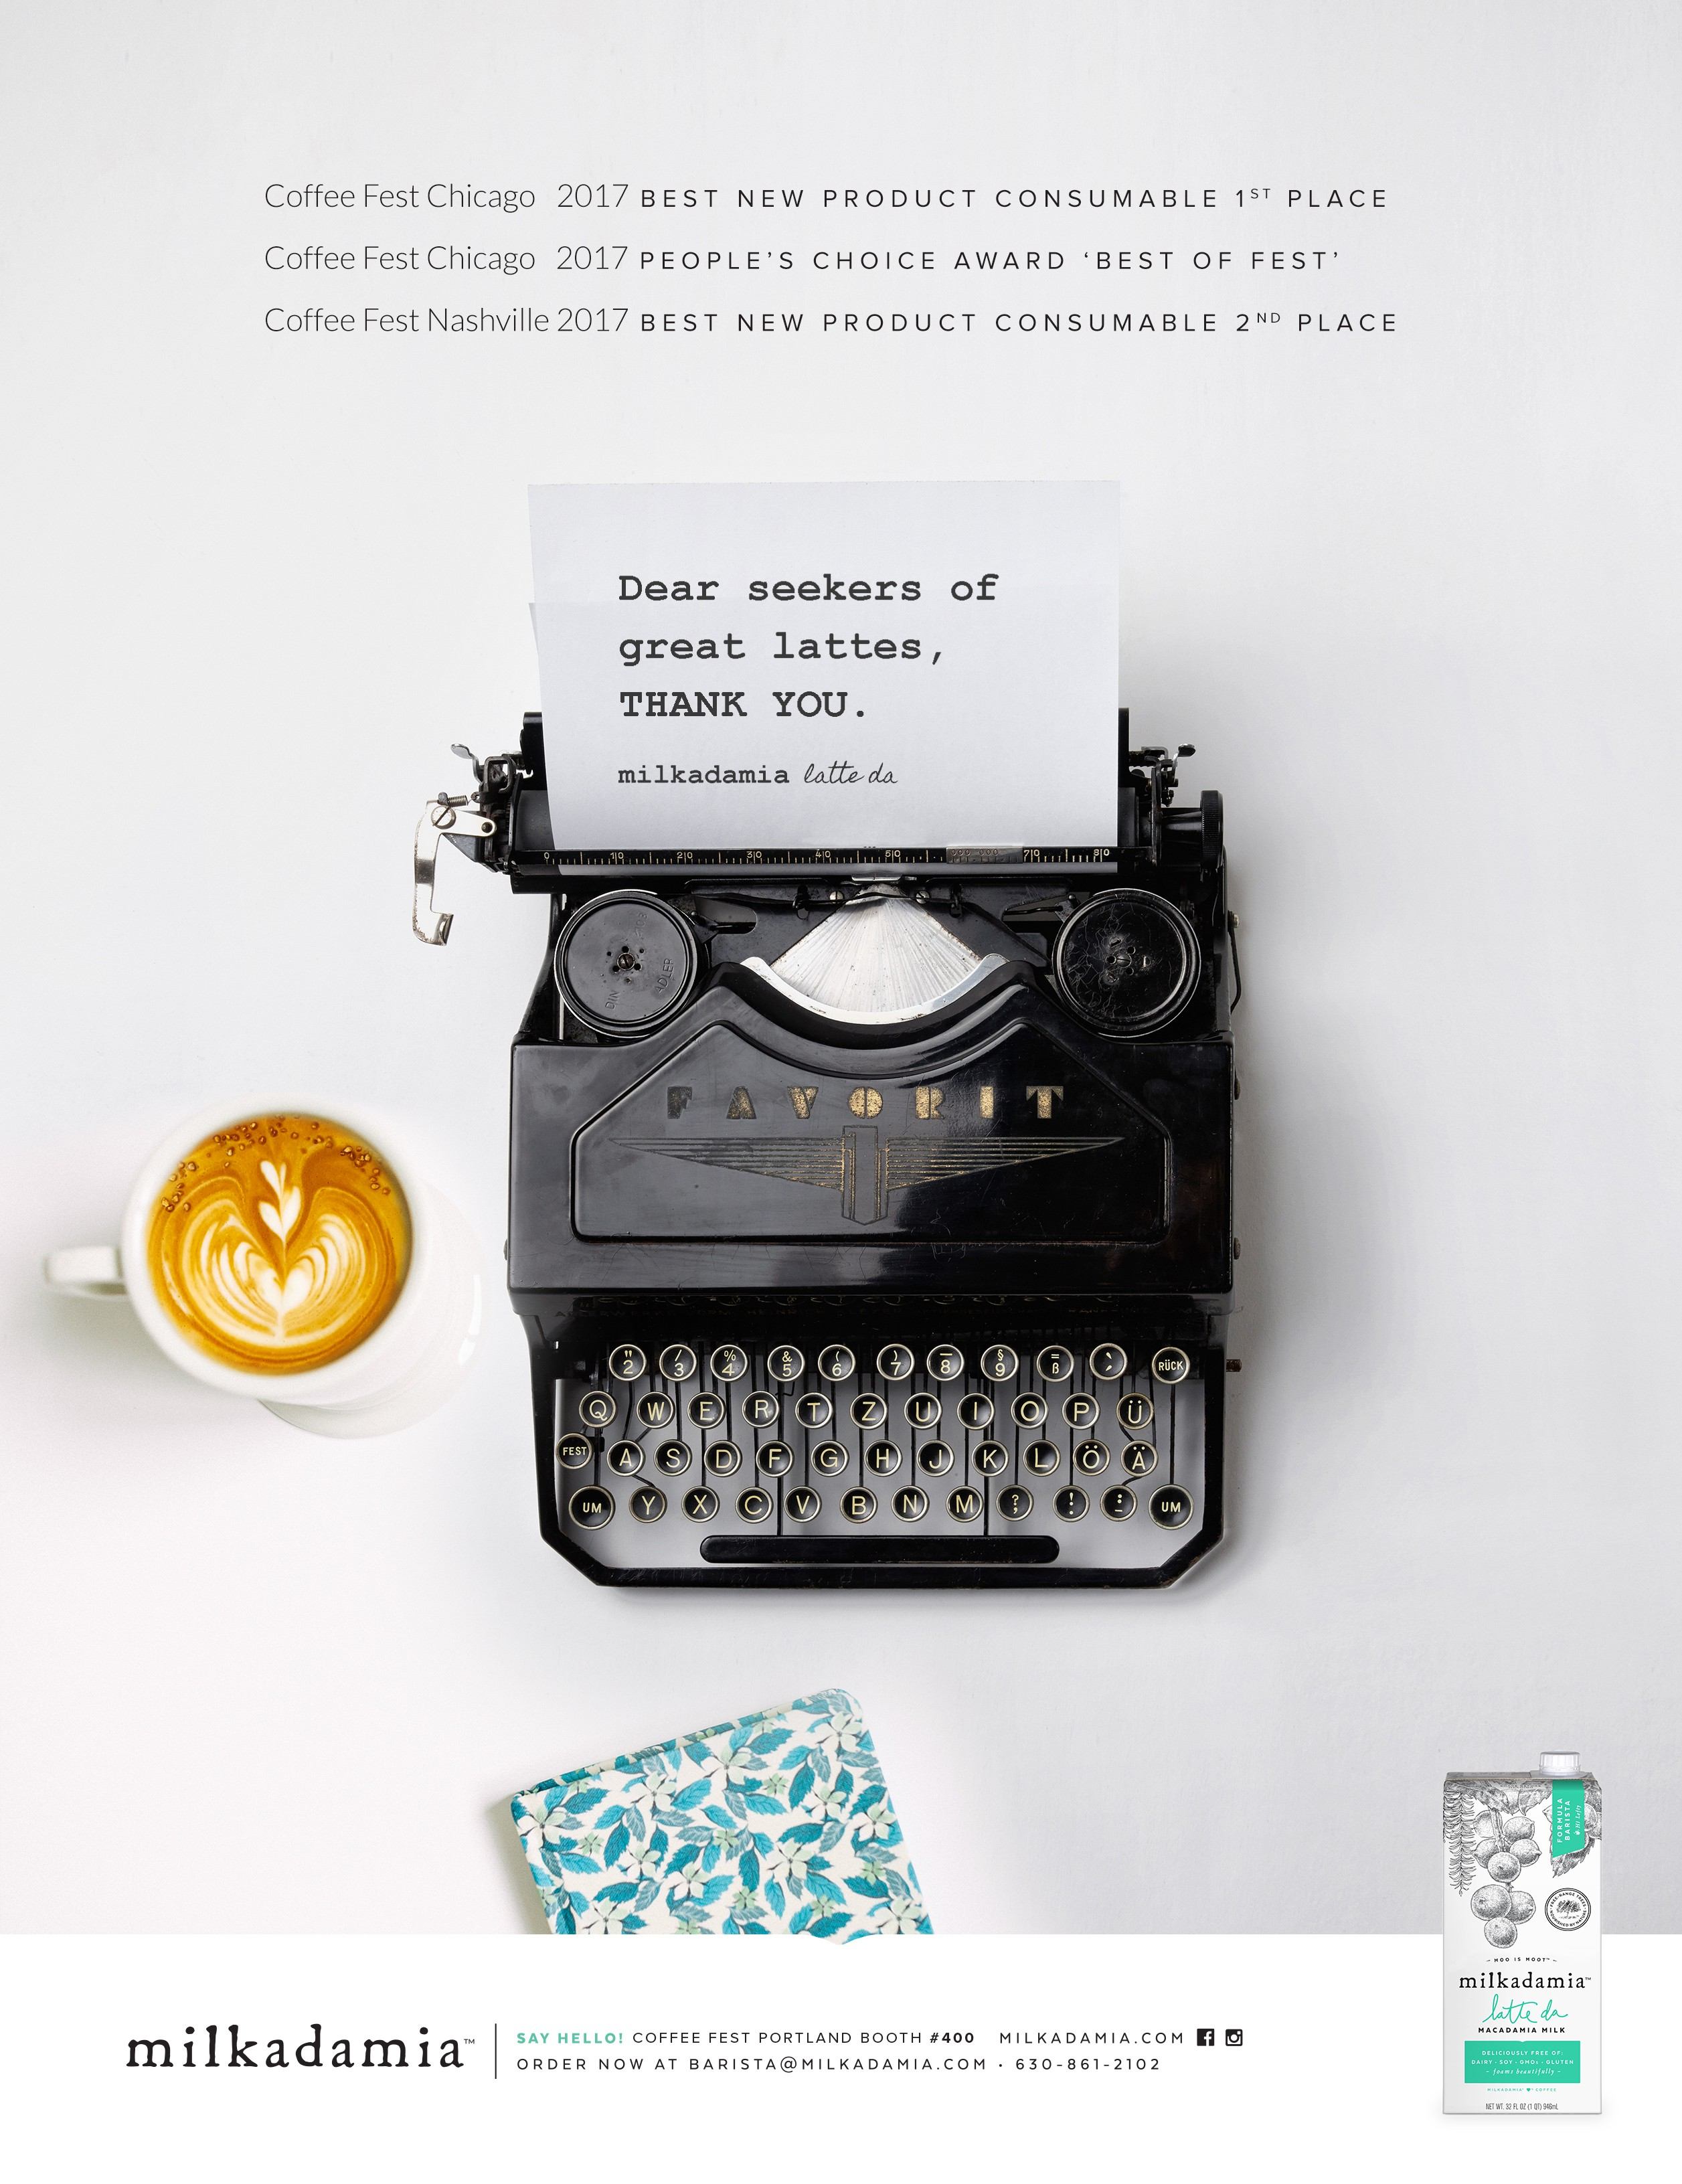 a disruptive coffee-industry specific print magazine ad for a cool, already famous startup beverage brand